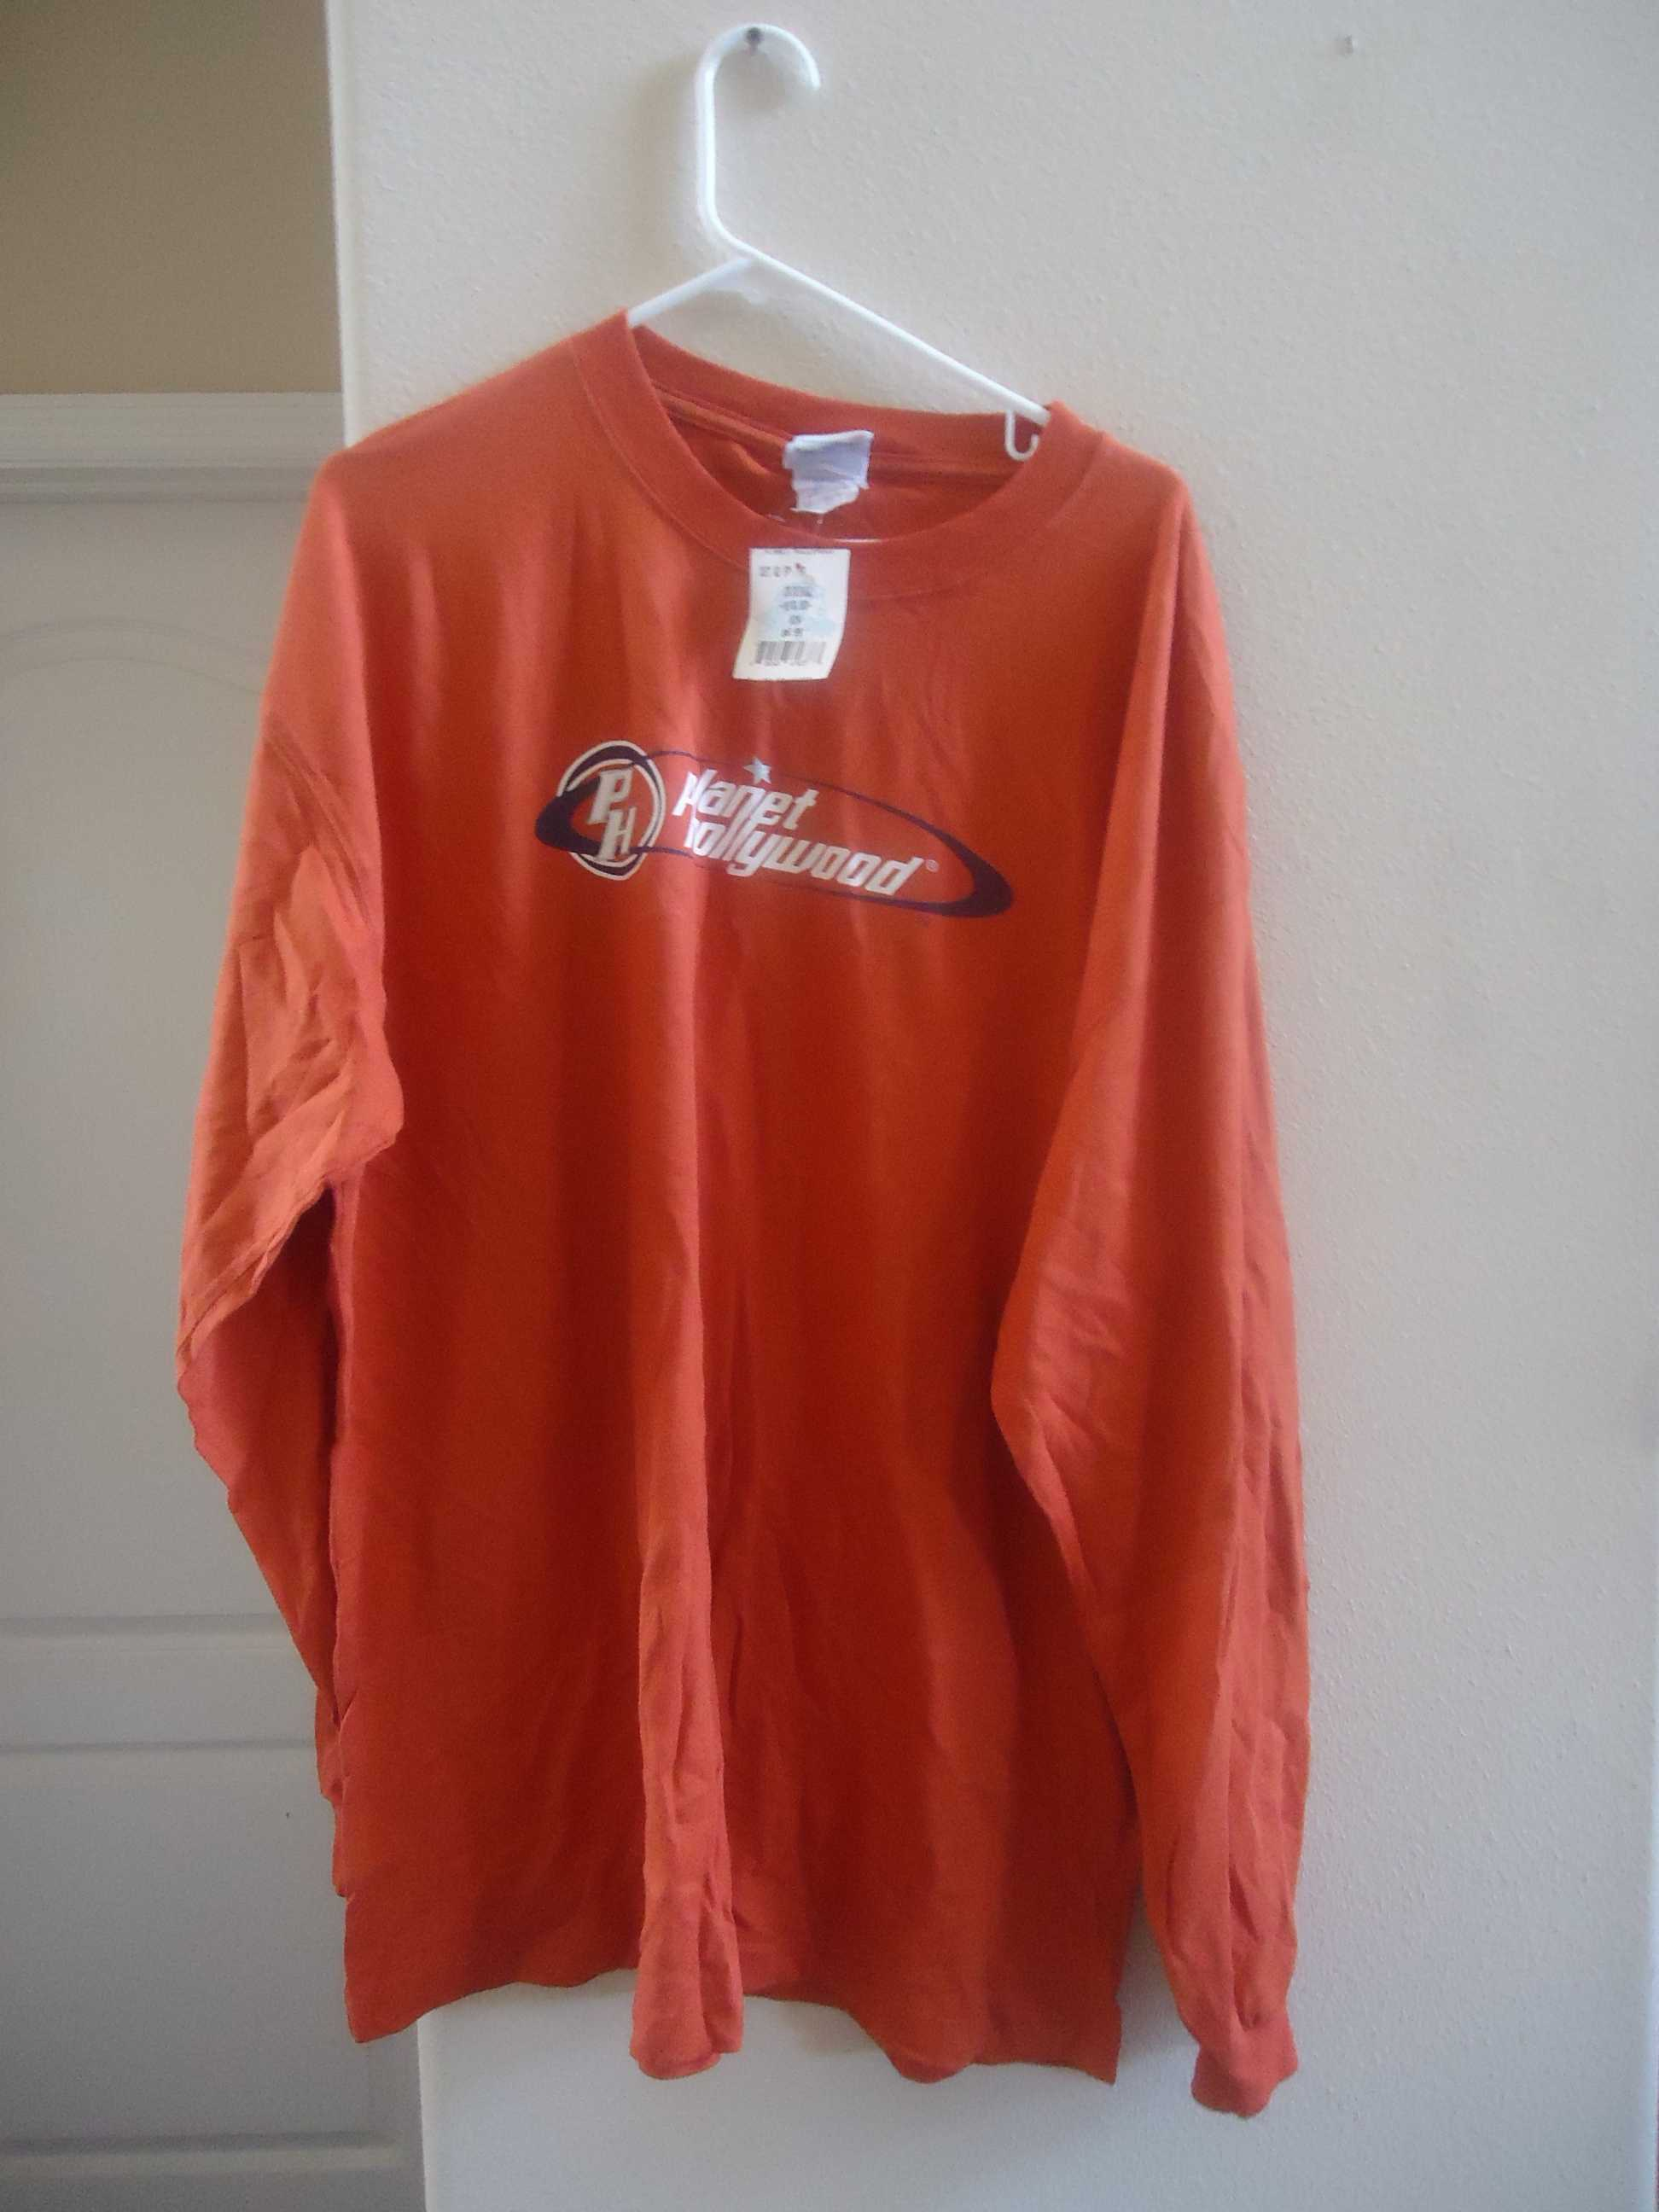 Planet hollywood pullover shirt for sale item 44951 for Planet hollywood t shirt